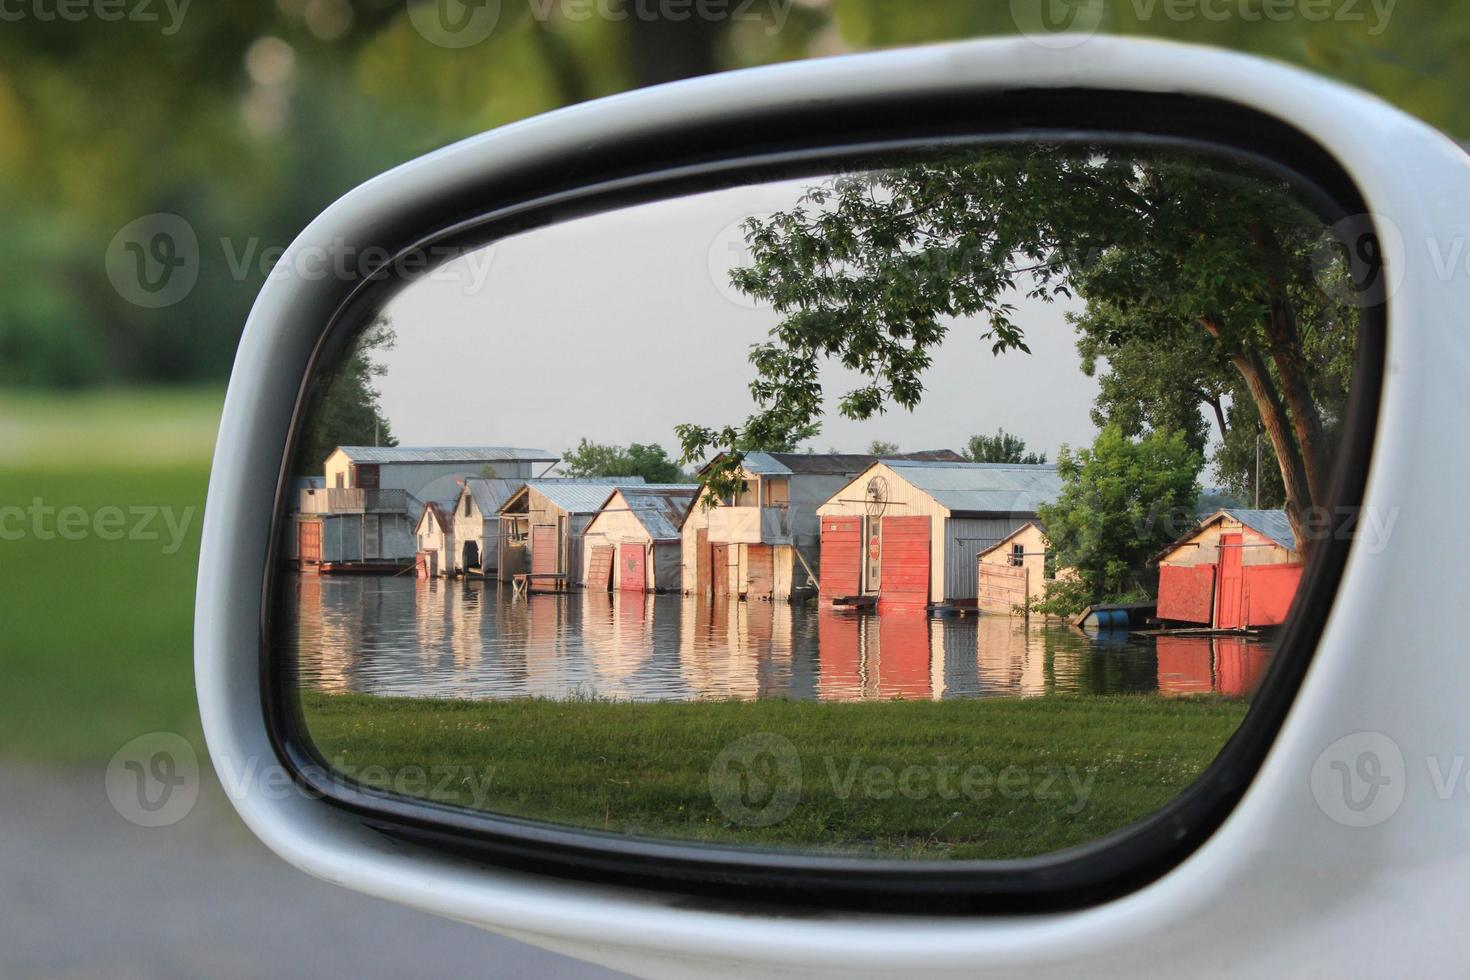 Reflection in Side Mirror of Car, of Boat Houses Reflected in Water photo